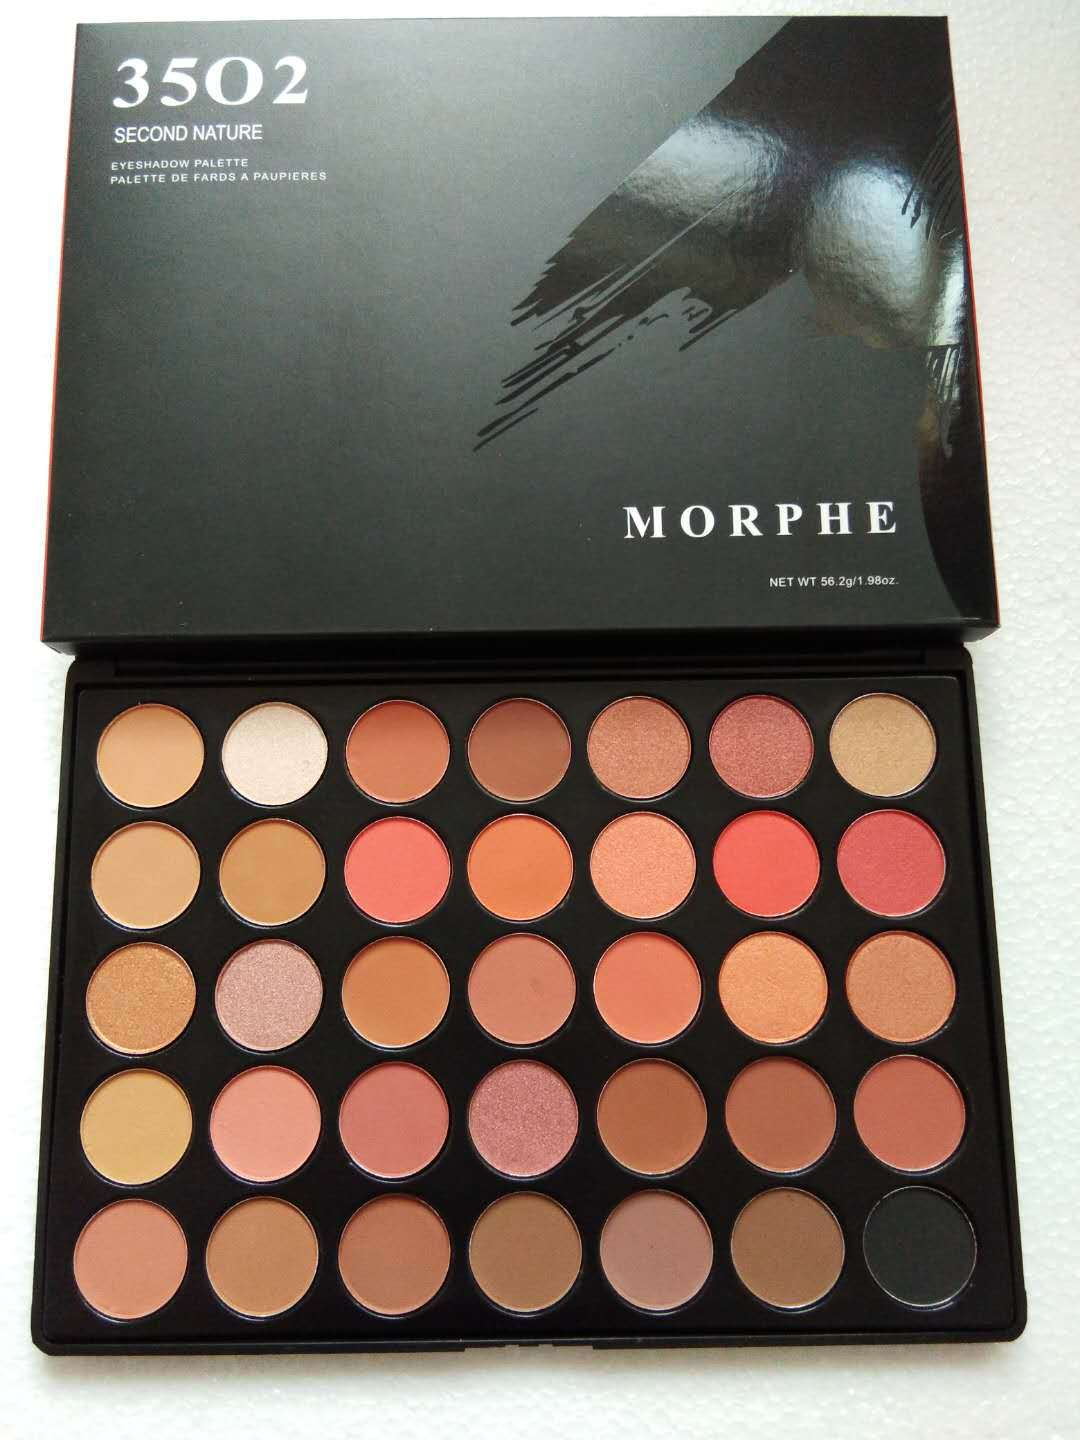 New Hot Morphe35 Make Up Palette Mask Profesional Eyeshadow Palettes Shimmer Eyeshadow Pallete Morphe35o2 Imagic Makeup